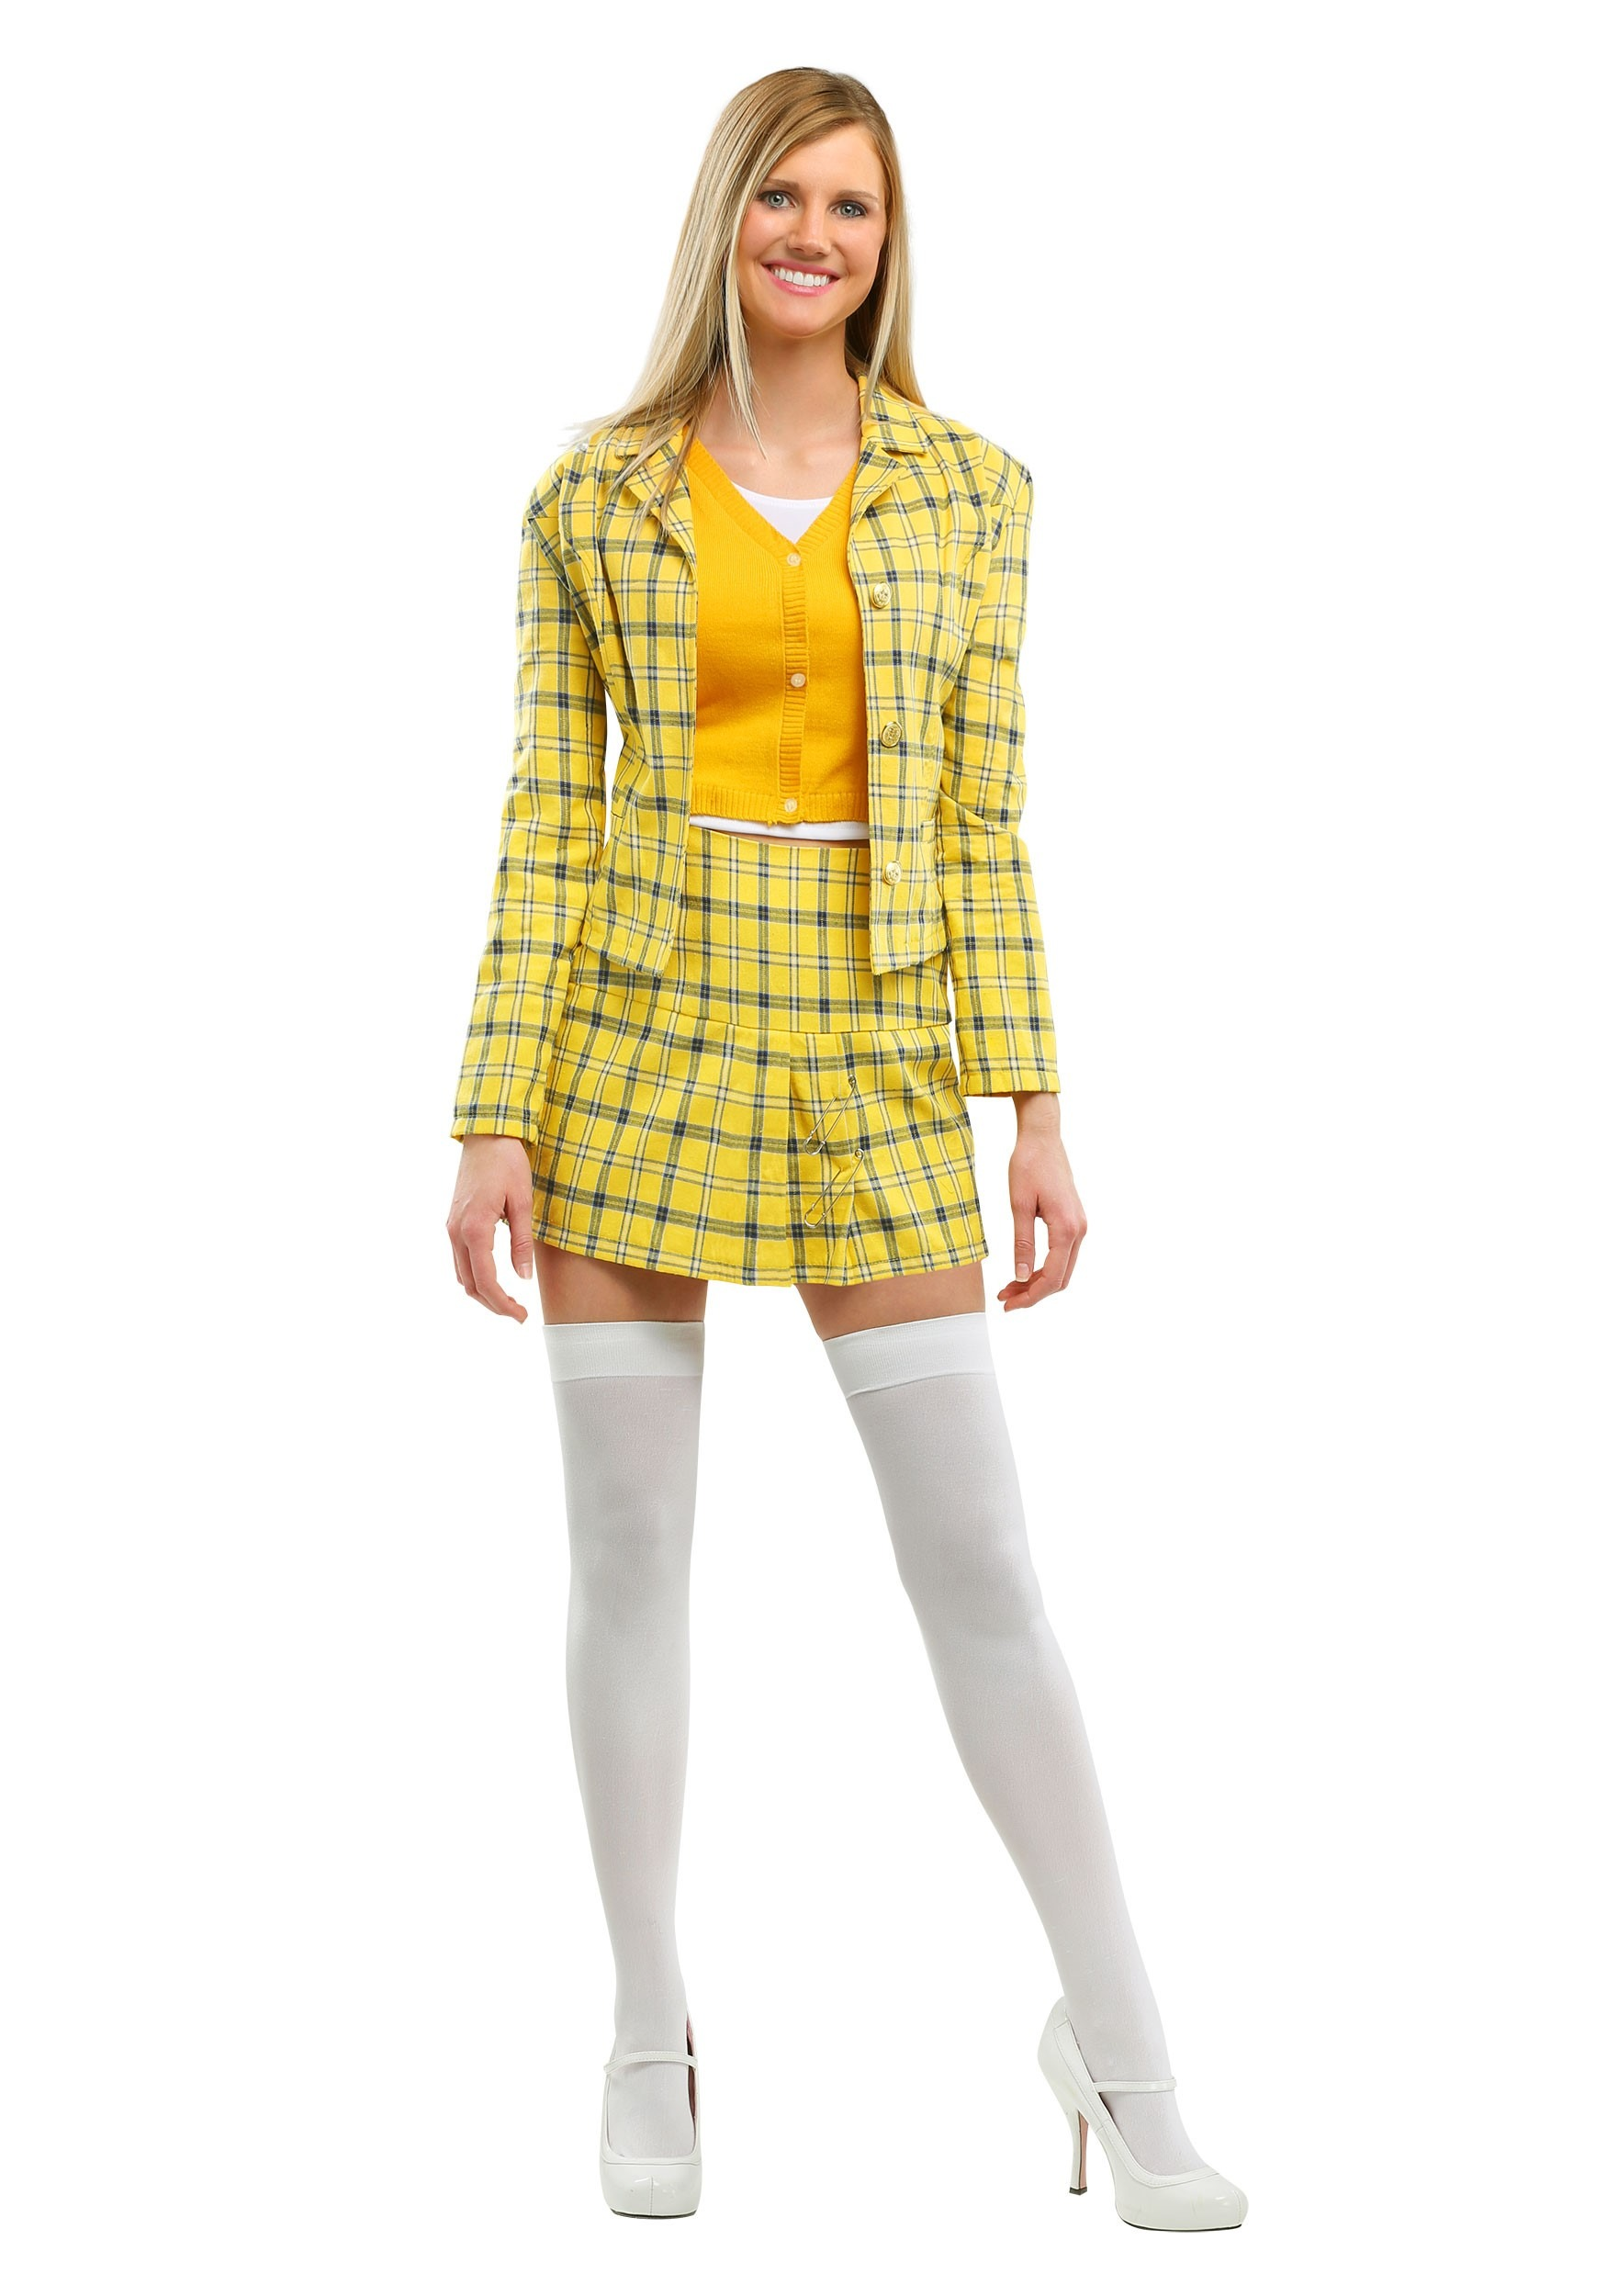 Cher Costume from Clueless